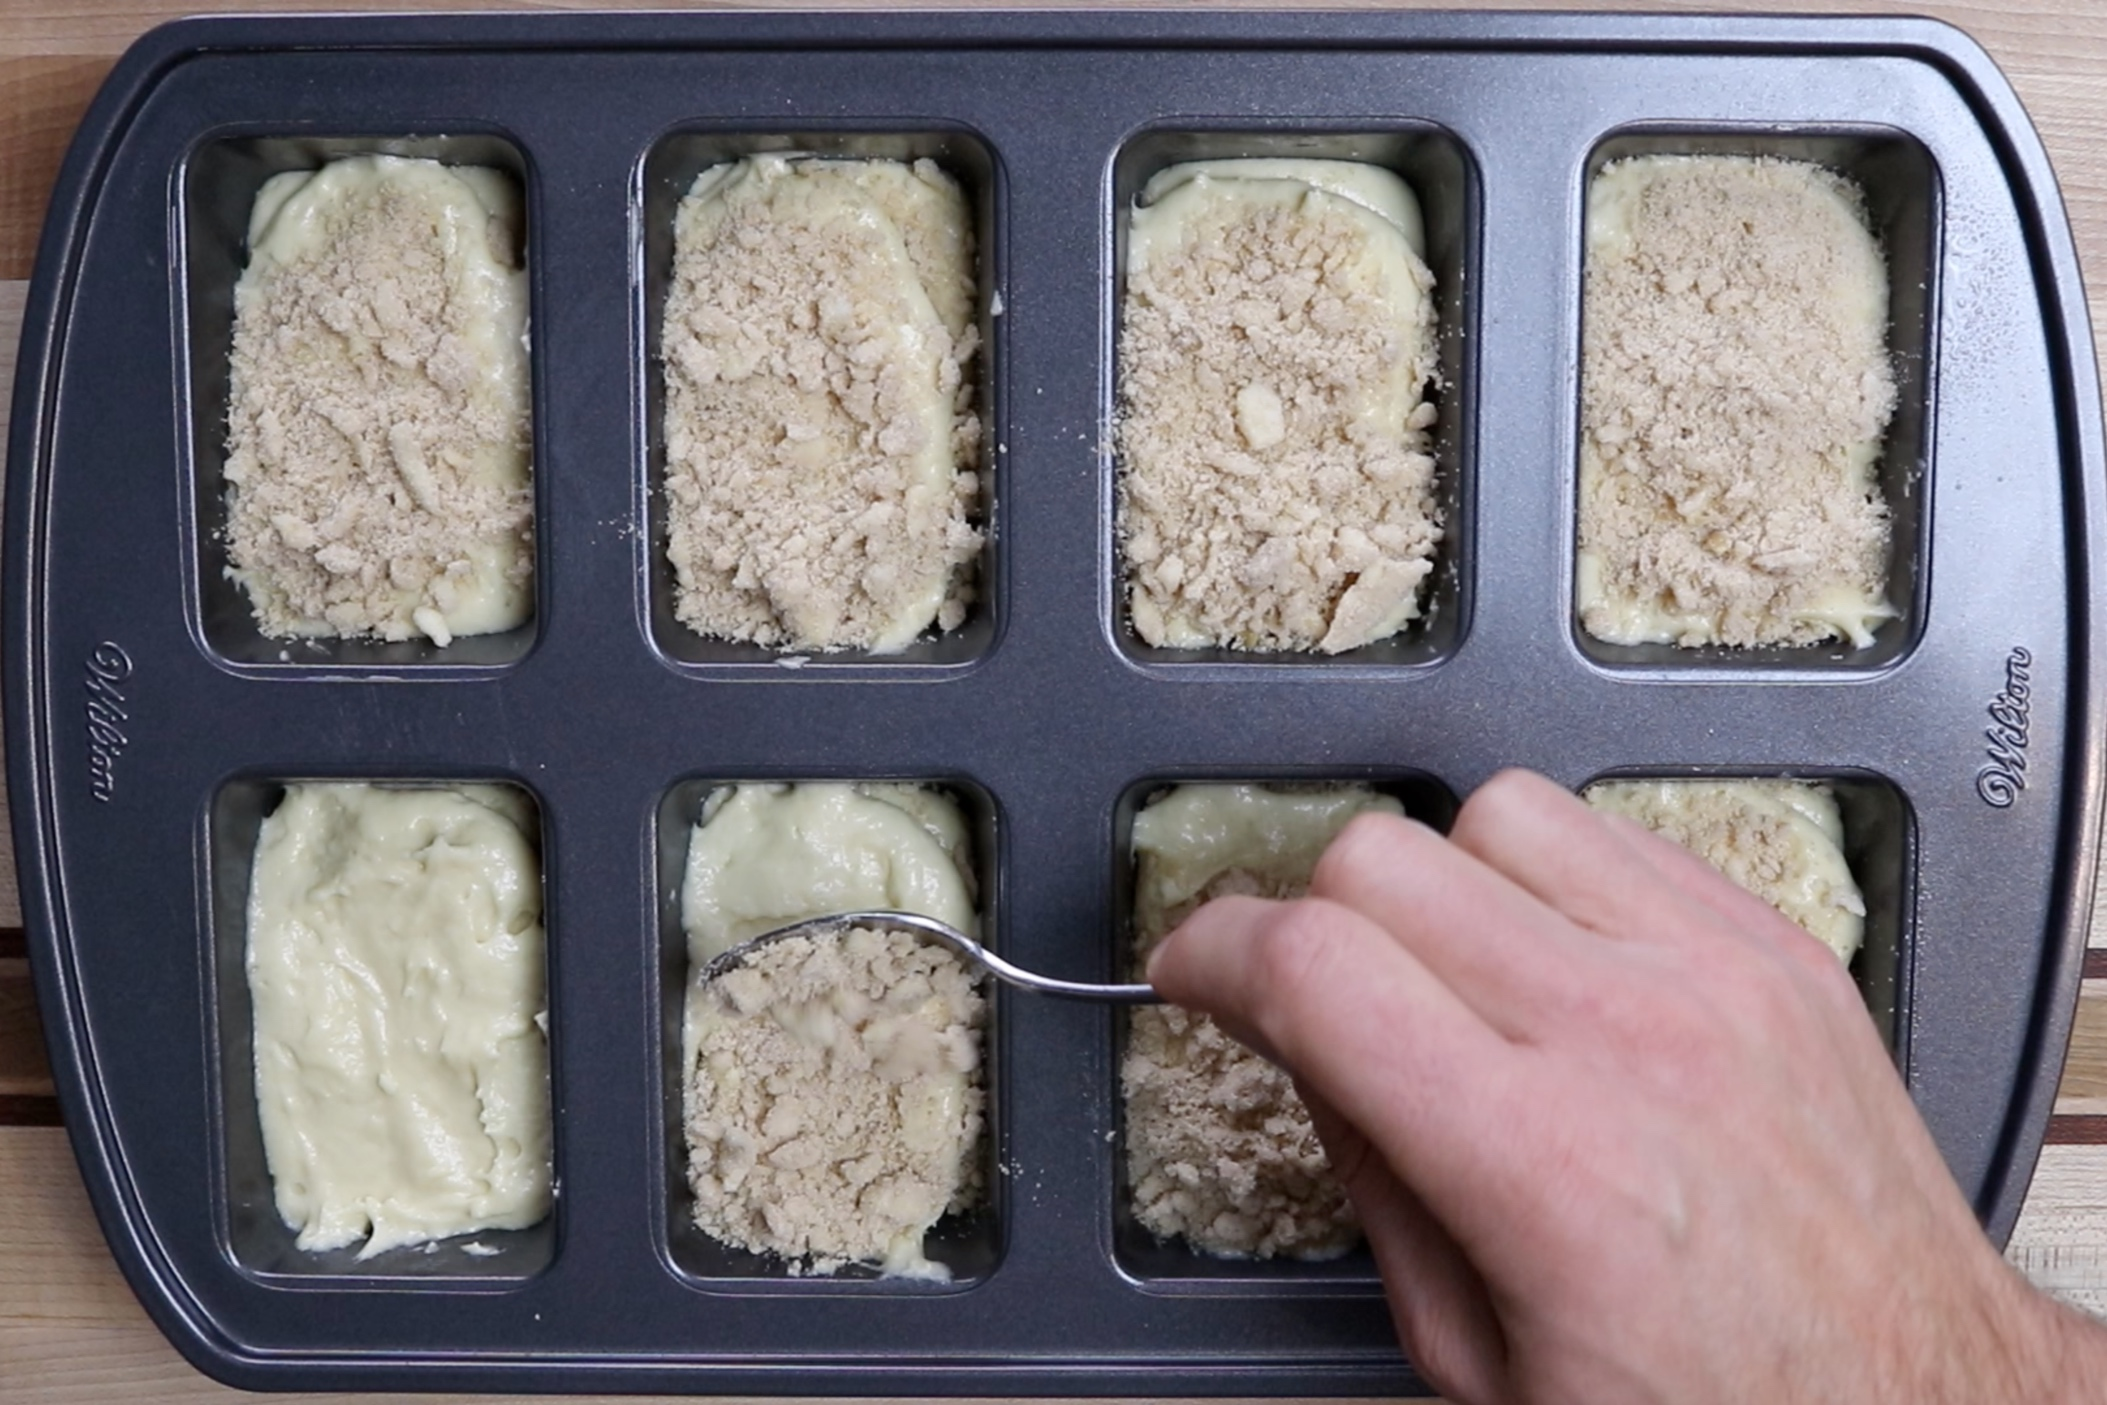 12. Spoon or pipe remaining mixture spreading evenly over the topping. Finish by sprinkling remaining topping over the loaves. -